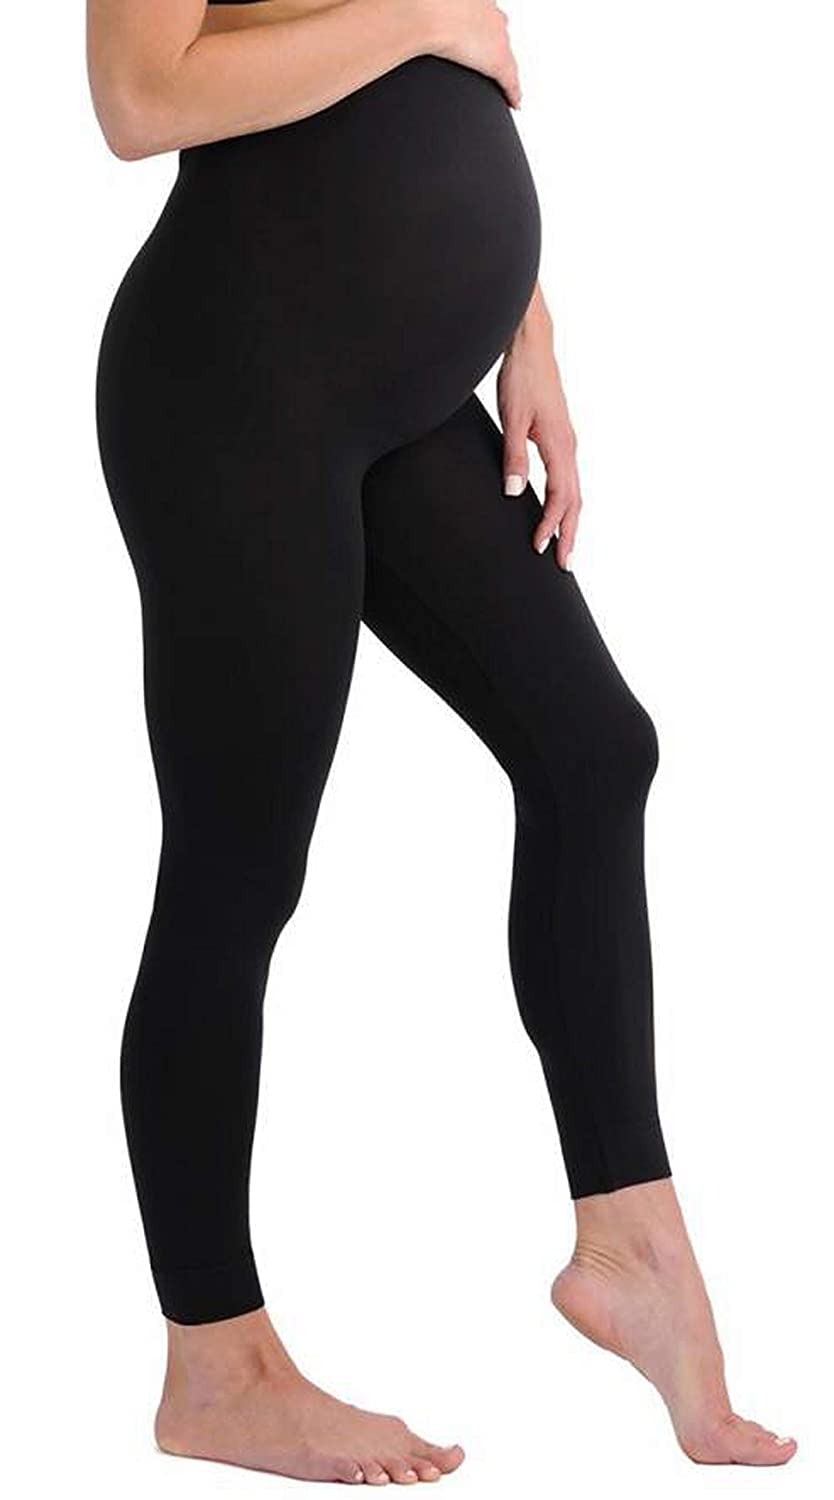 fdac0b18e4f01d Touch Me Maternity Leggings Black Navy Grey Soft Solid Stretch Seamless  Tights One Size Fits All Active Wear Yoga Gym Clothes (Maternity - One Size  Fits All ...